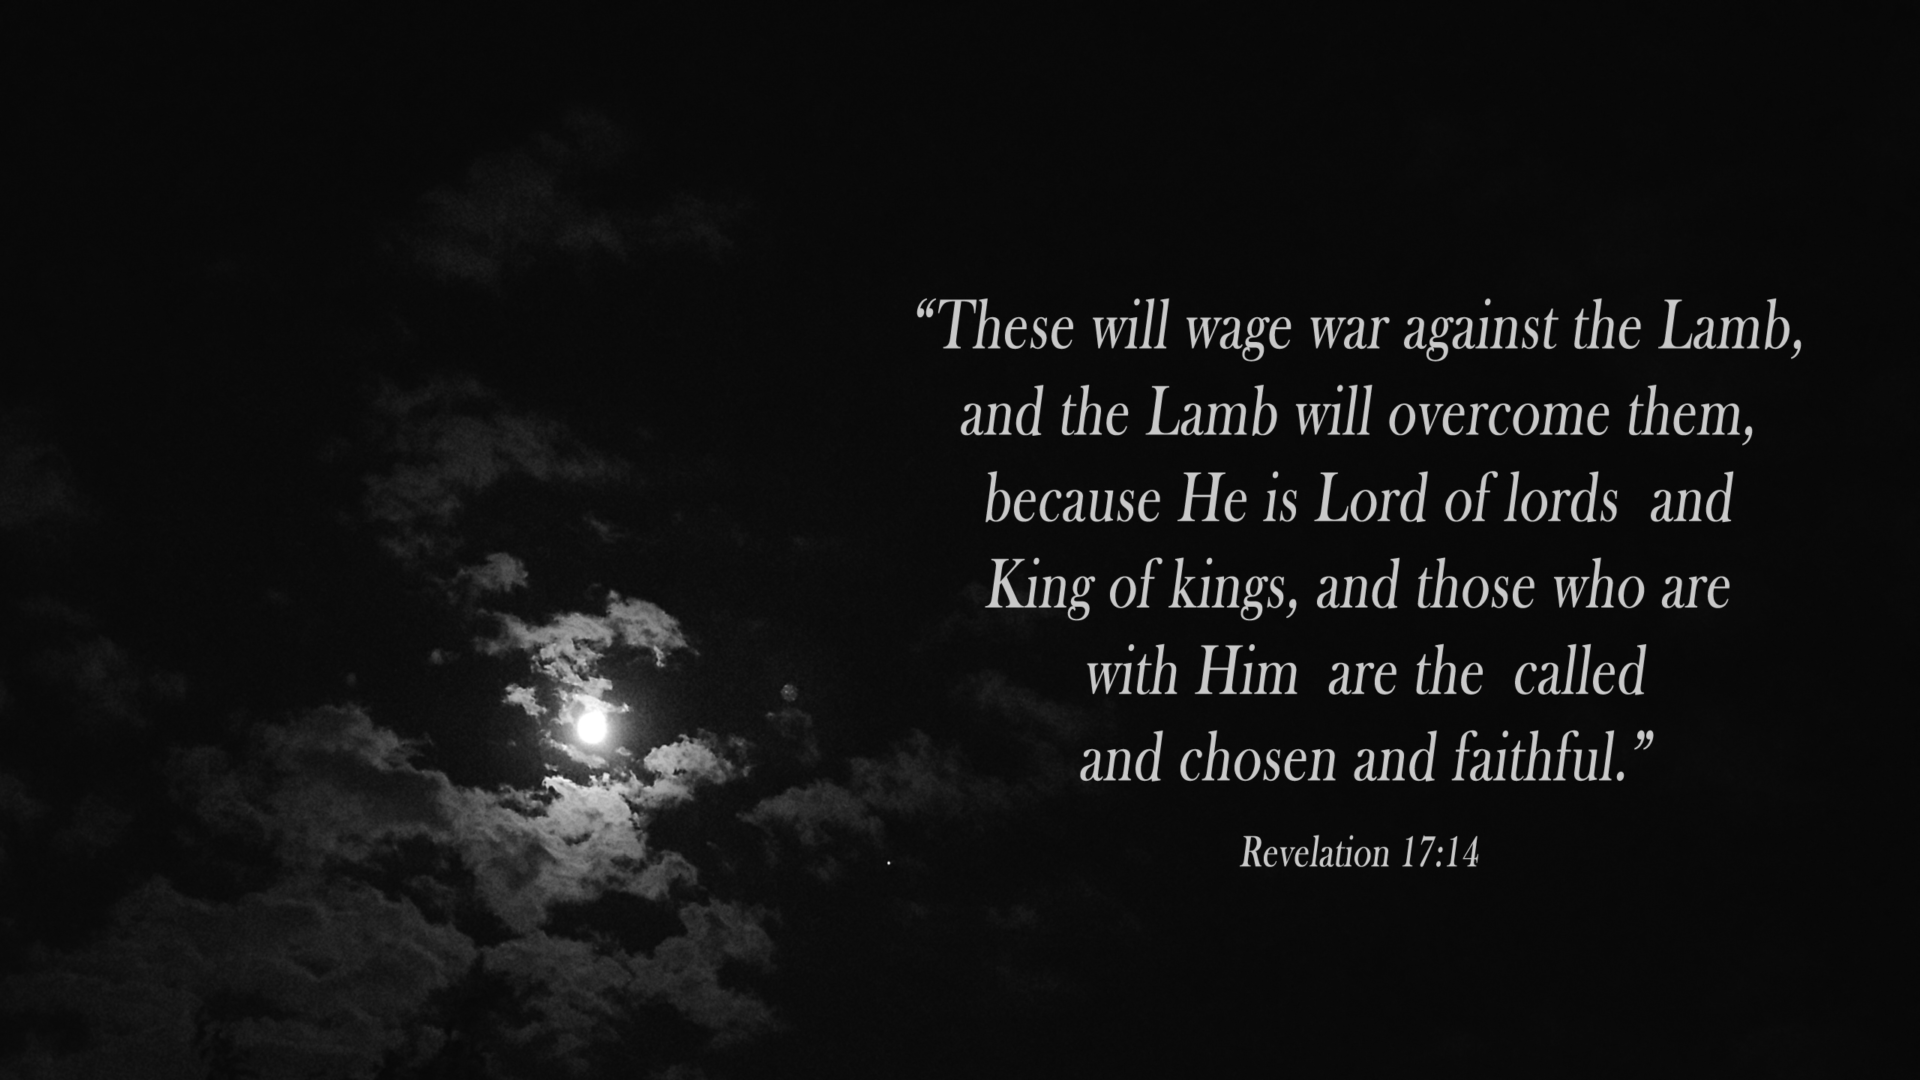 """""""These will wage war against the Lamb, and the Lamb will overcome them, because He is Lord of lords and King of kings, and those who are with Him are the called and chosen and faithful."""" David Reese thoughtsofgod.com Revelation 17:14"""